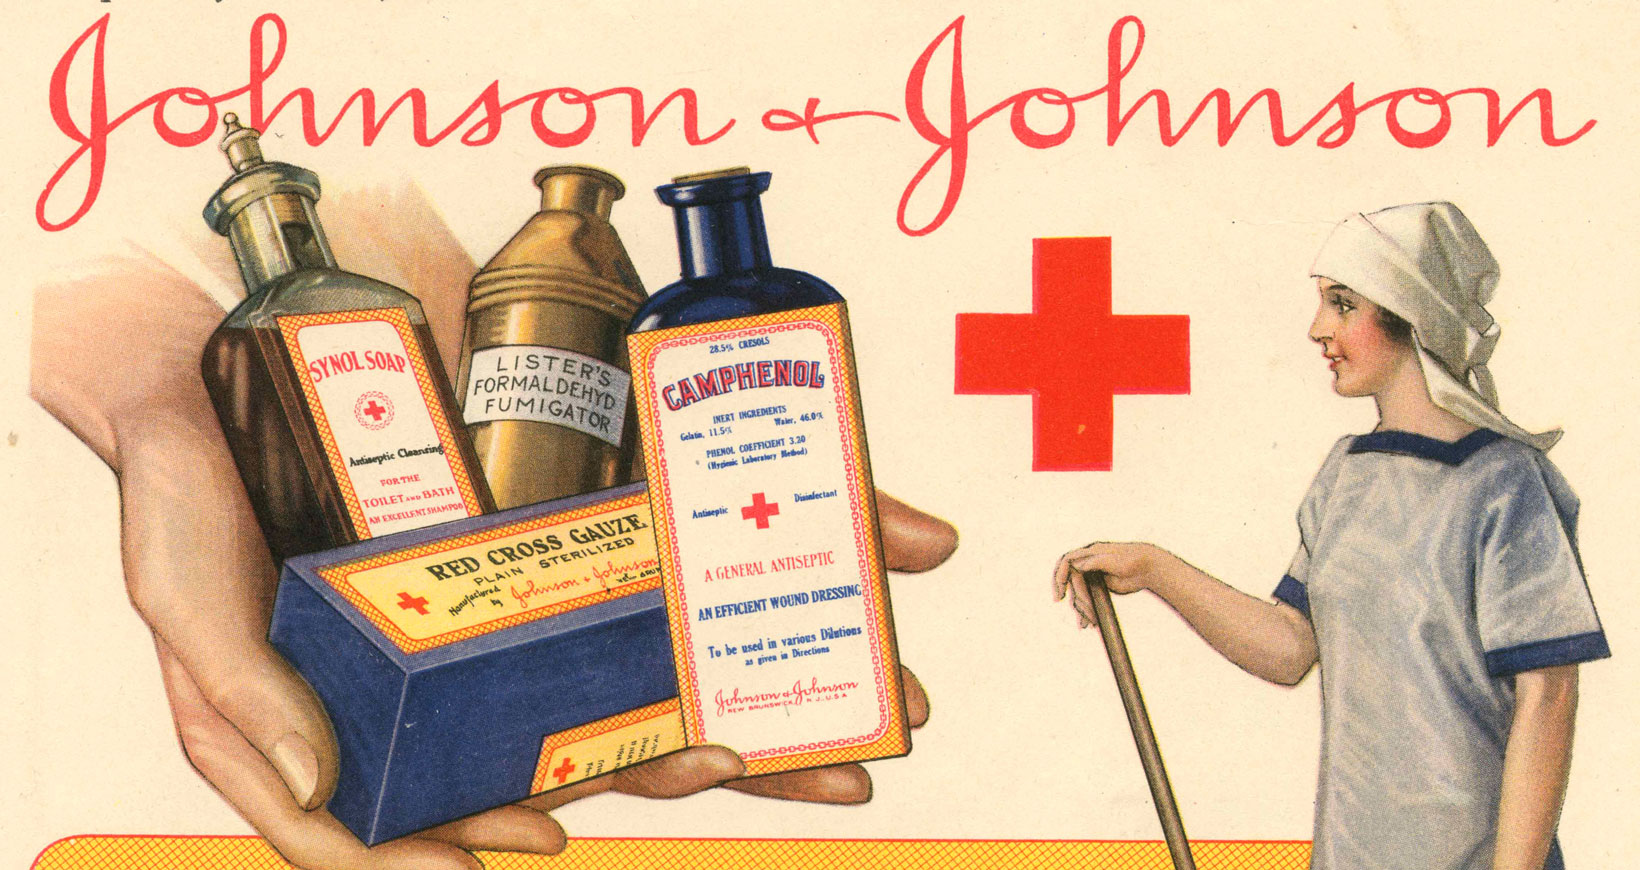 Johnson and johnson employee stock options